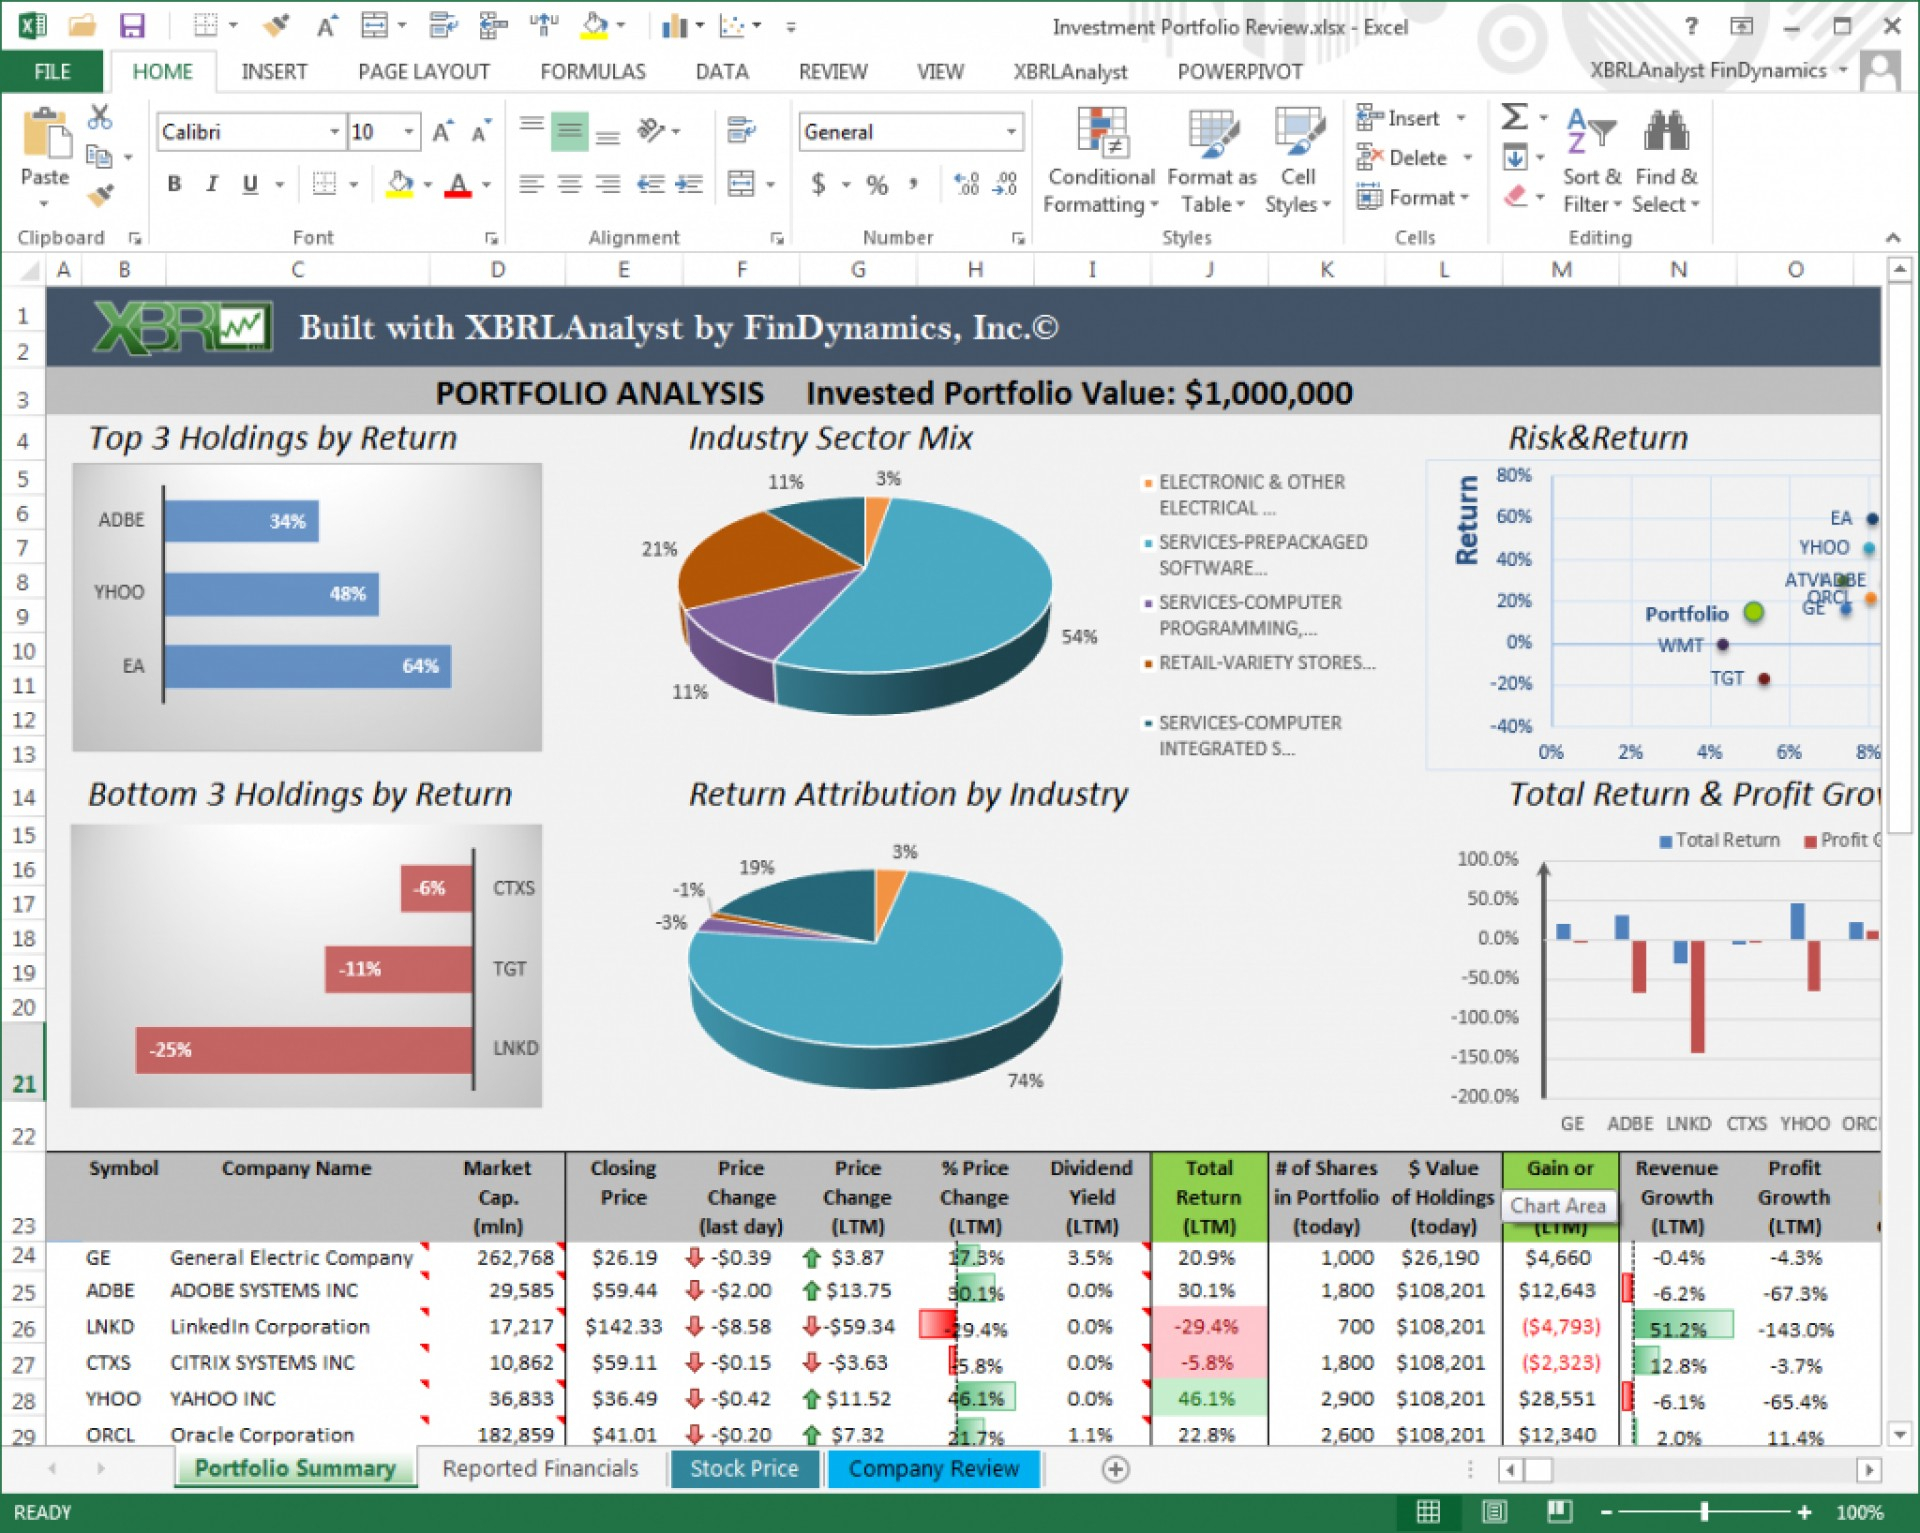 Excel file to invest cryptocurrency